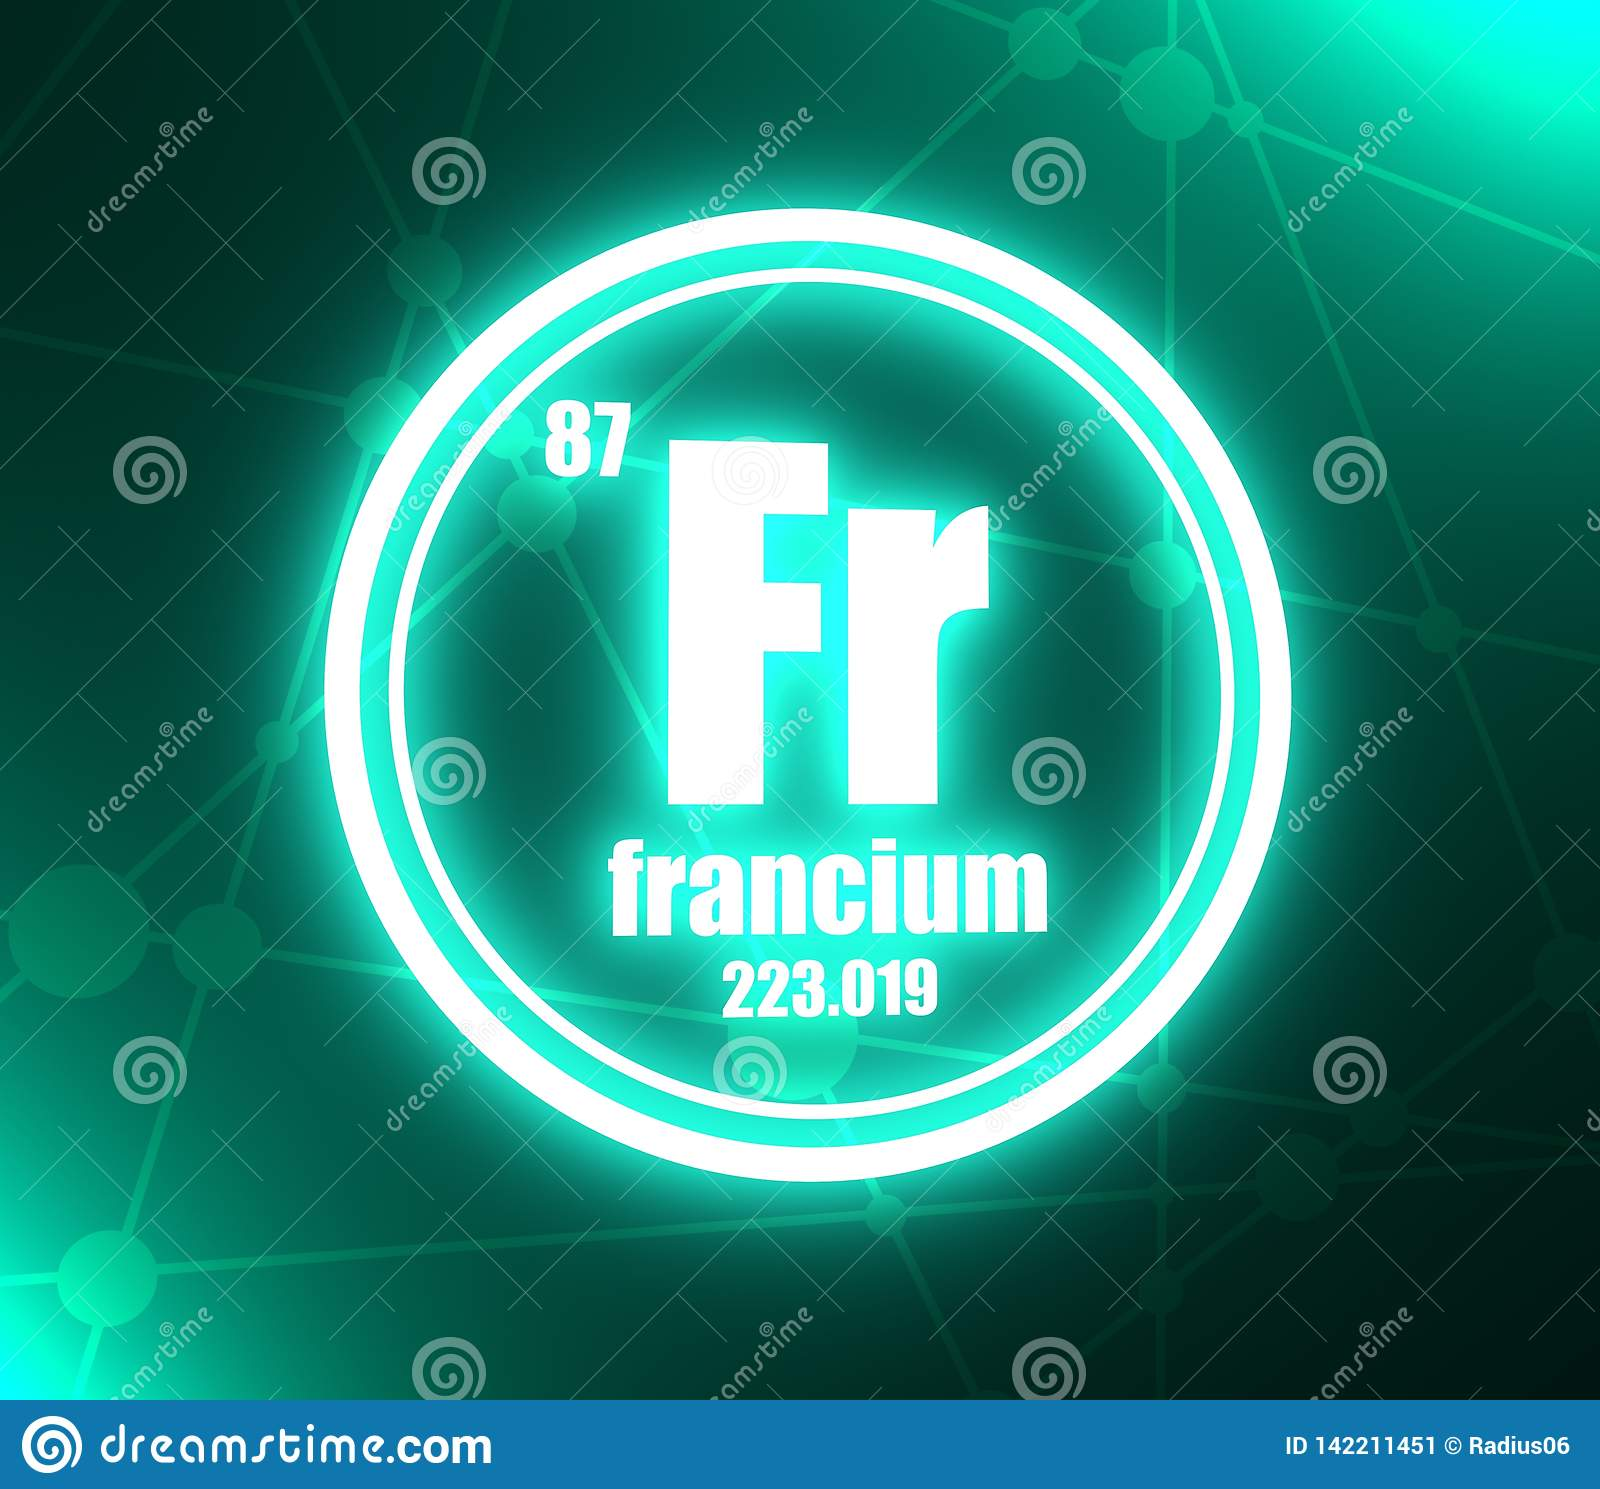 hight resolution of francium chemical element stock illustration illustration of francium shell diagram francium chemical element